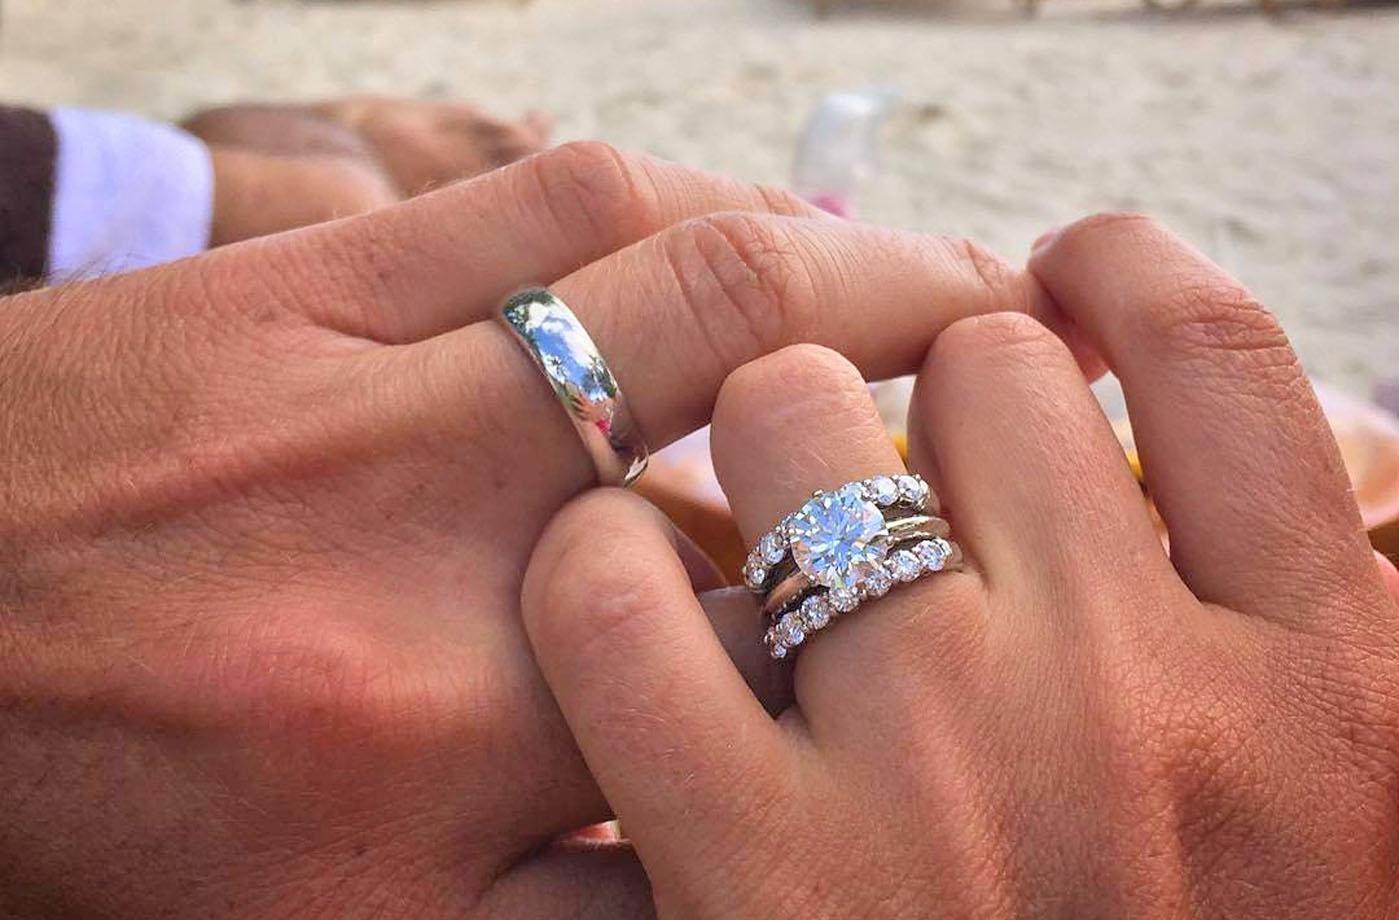 How To Wear Wedding Rings Rules For Your Ring Finger Oh So Perfect Proposal